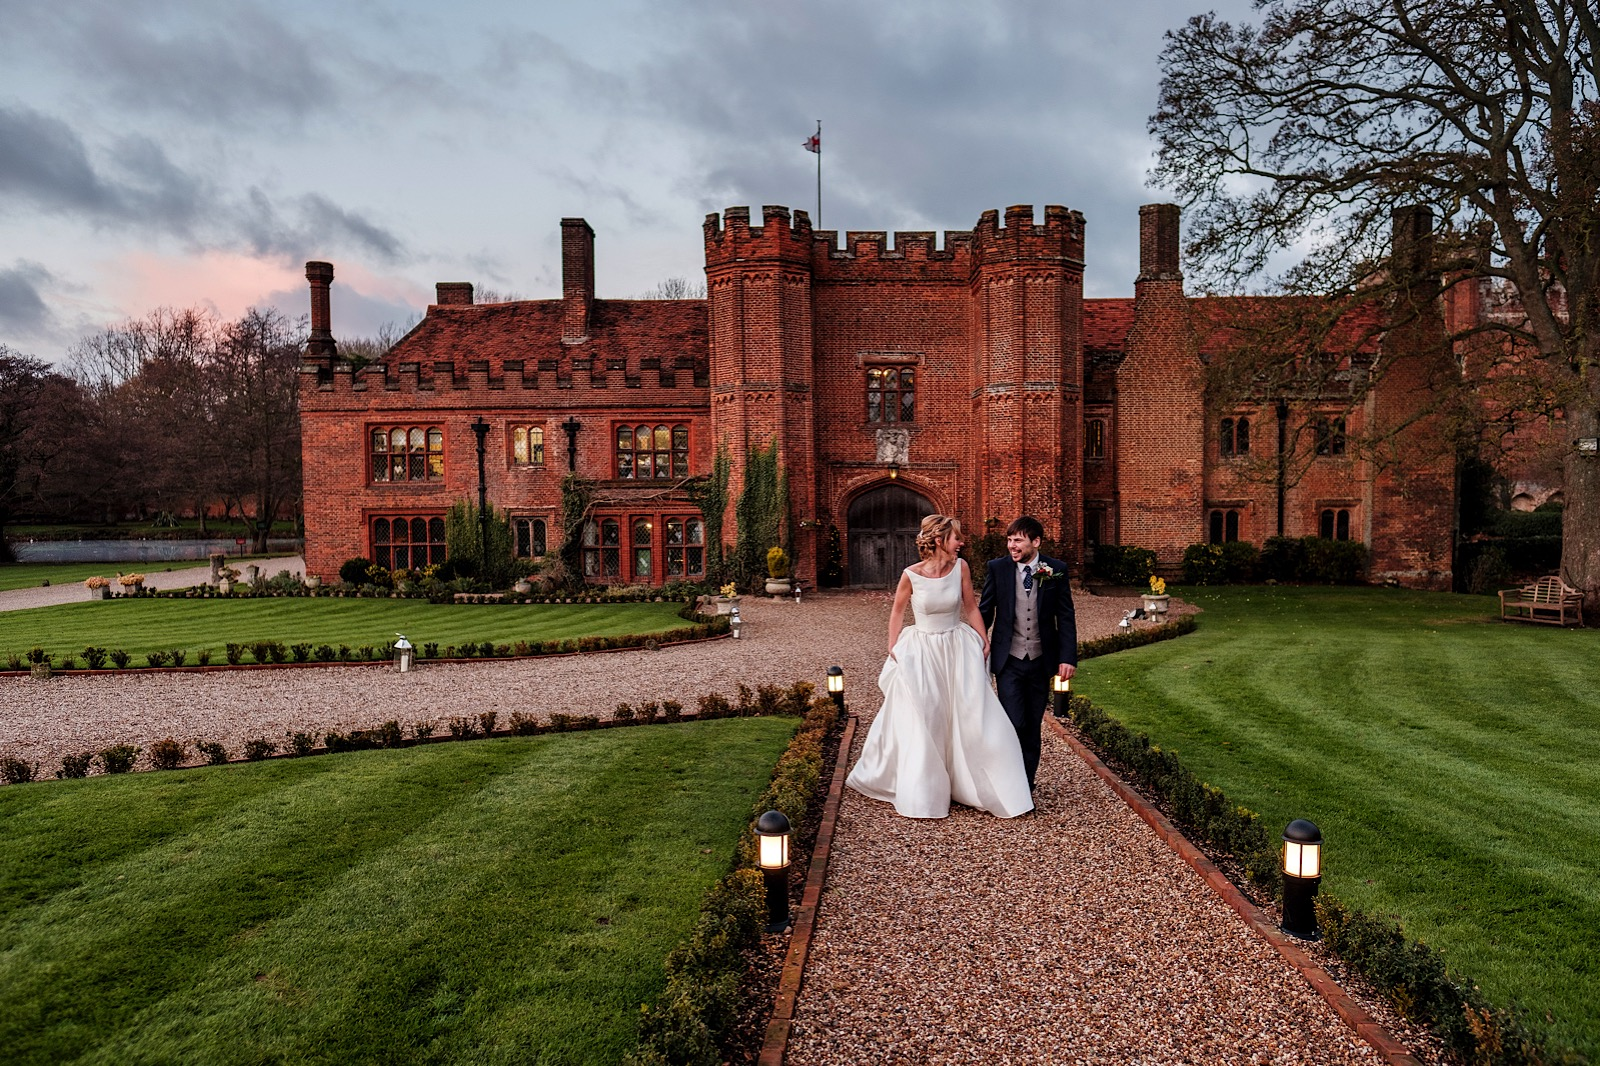 External view of Essex Wedding Venue Leez Priory with couple walking down a path